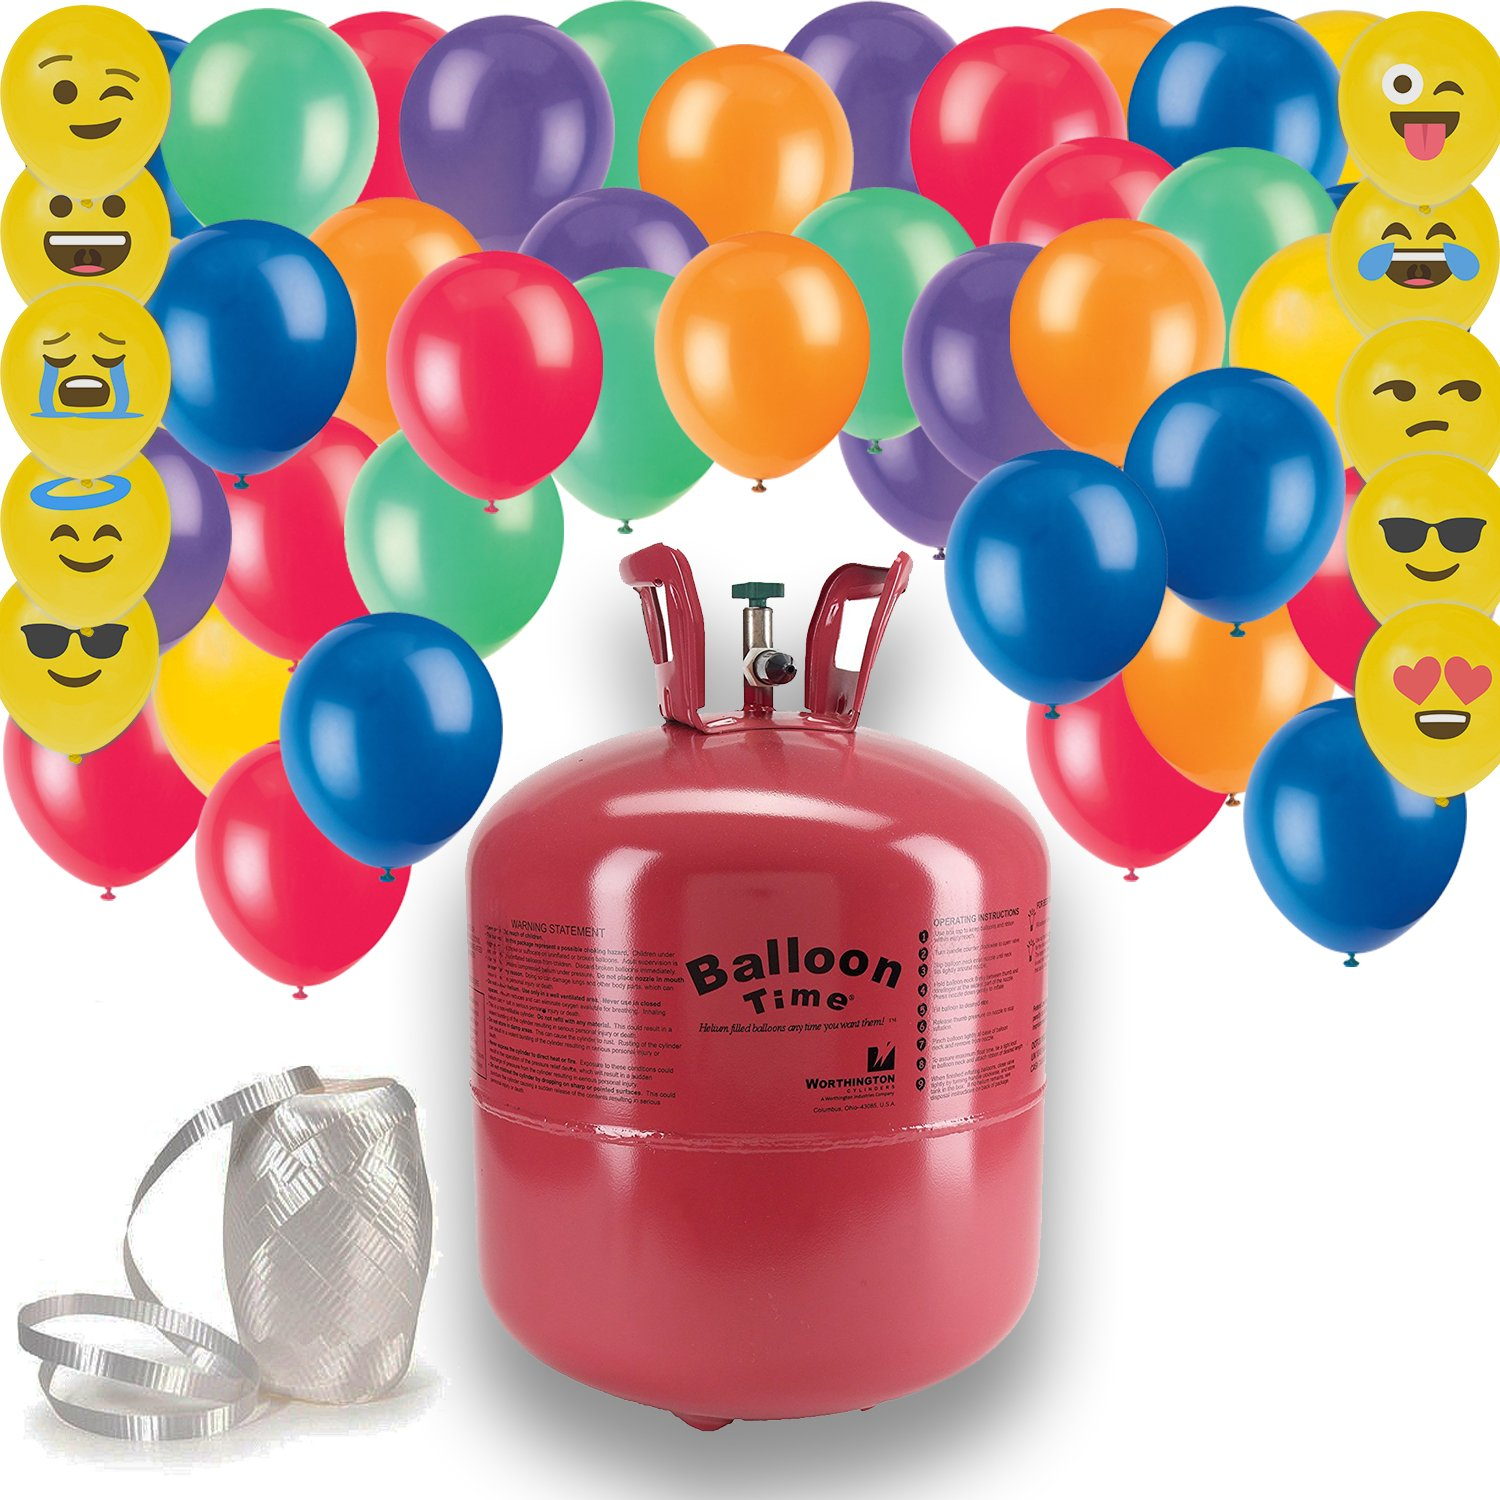 Helium Tank + 50 Multi Color balloons + White Curling Ribbon | Includes 10 emoji Balloons. 14.9 CU Ft Helium, Enough for 50 9'' Balloons